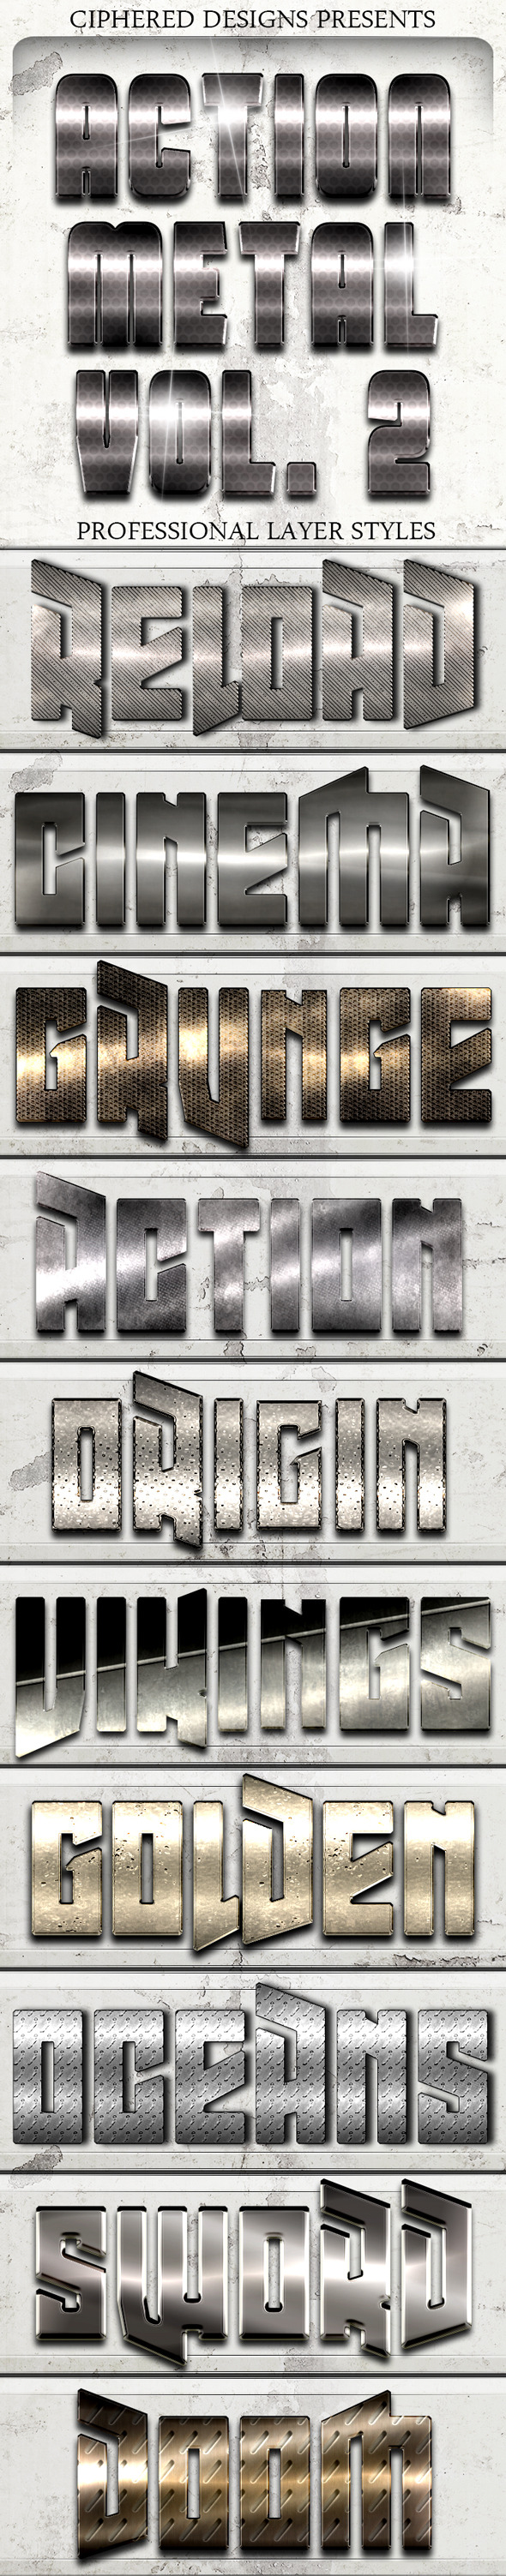 Action Metal 02 Pro Text Effects